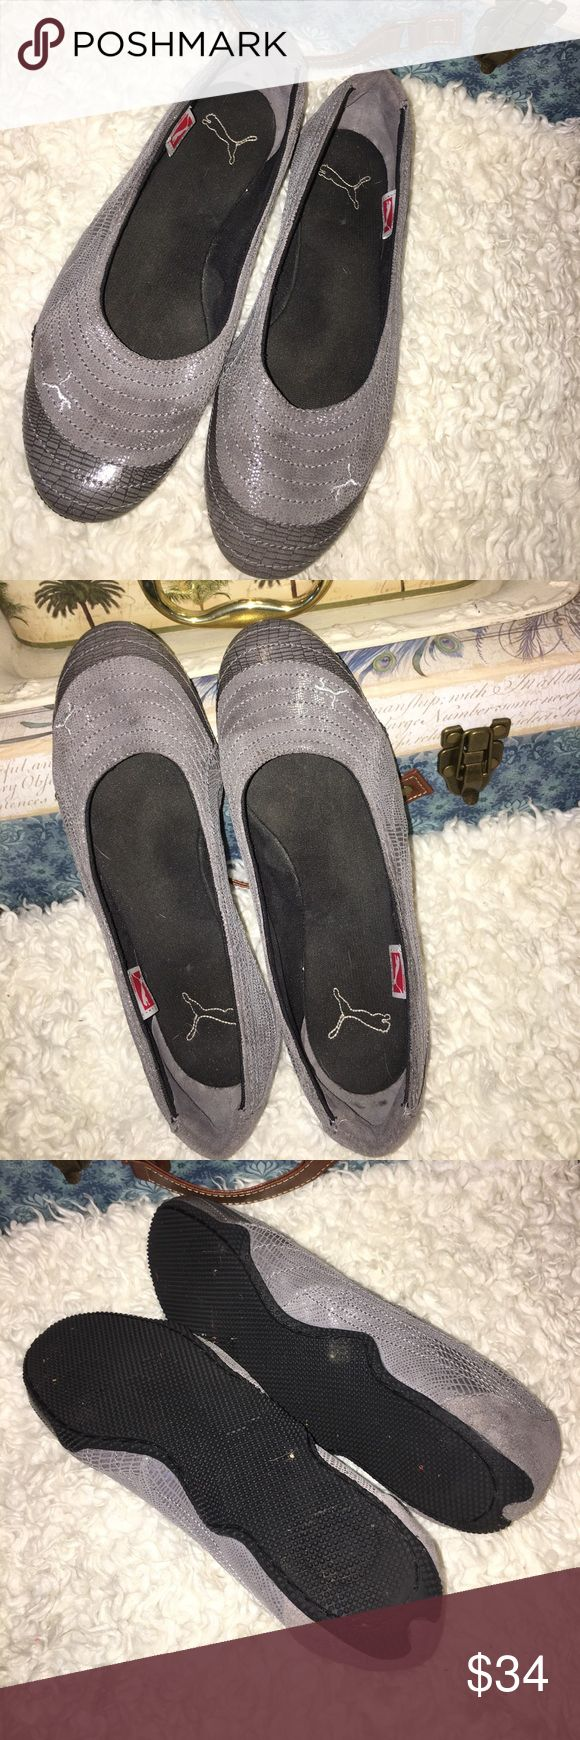 "Puma ""athleisure"" slip on tennies Perfect for on the go women who want to be comfortable and stylish. Gorgeous gray leather/suede flats with slip resistant soles. I love Pumas❤️ Puma Shoes Flats & Loafers"